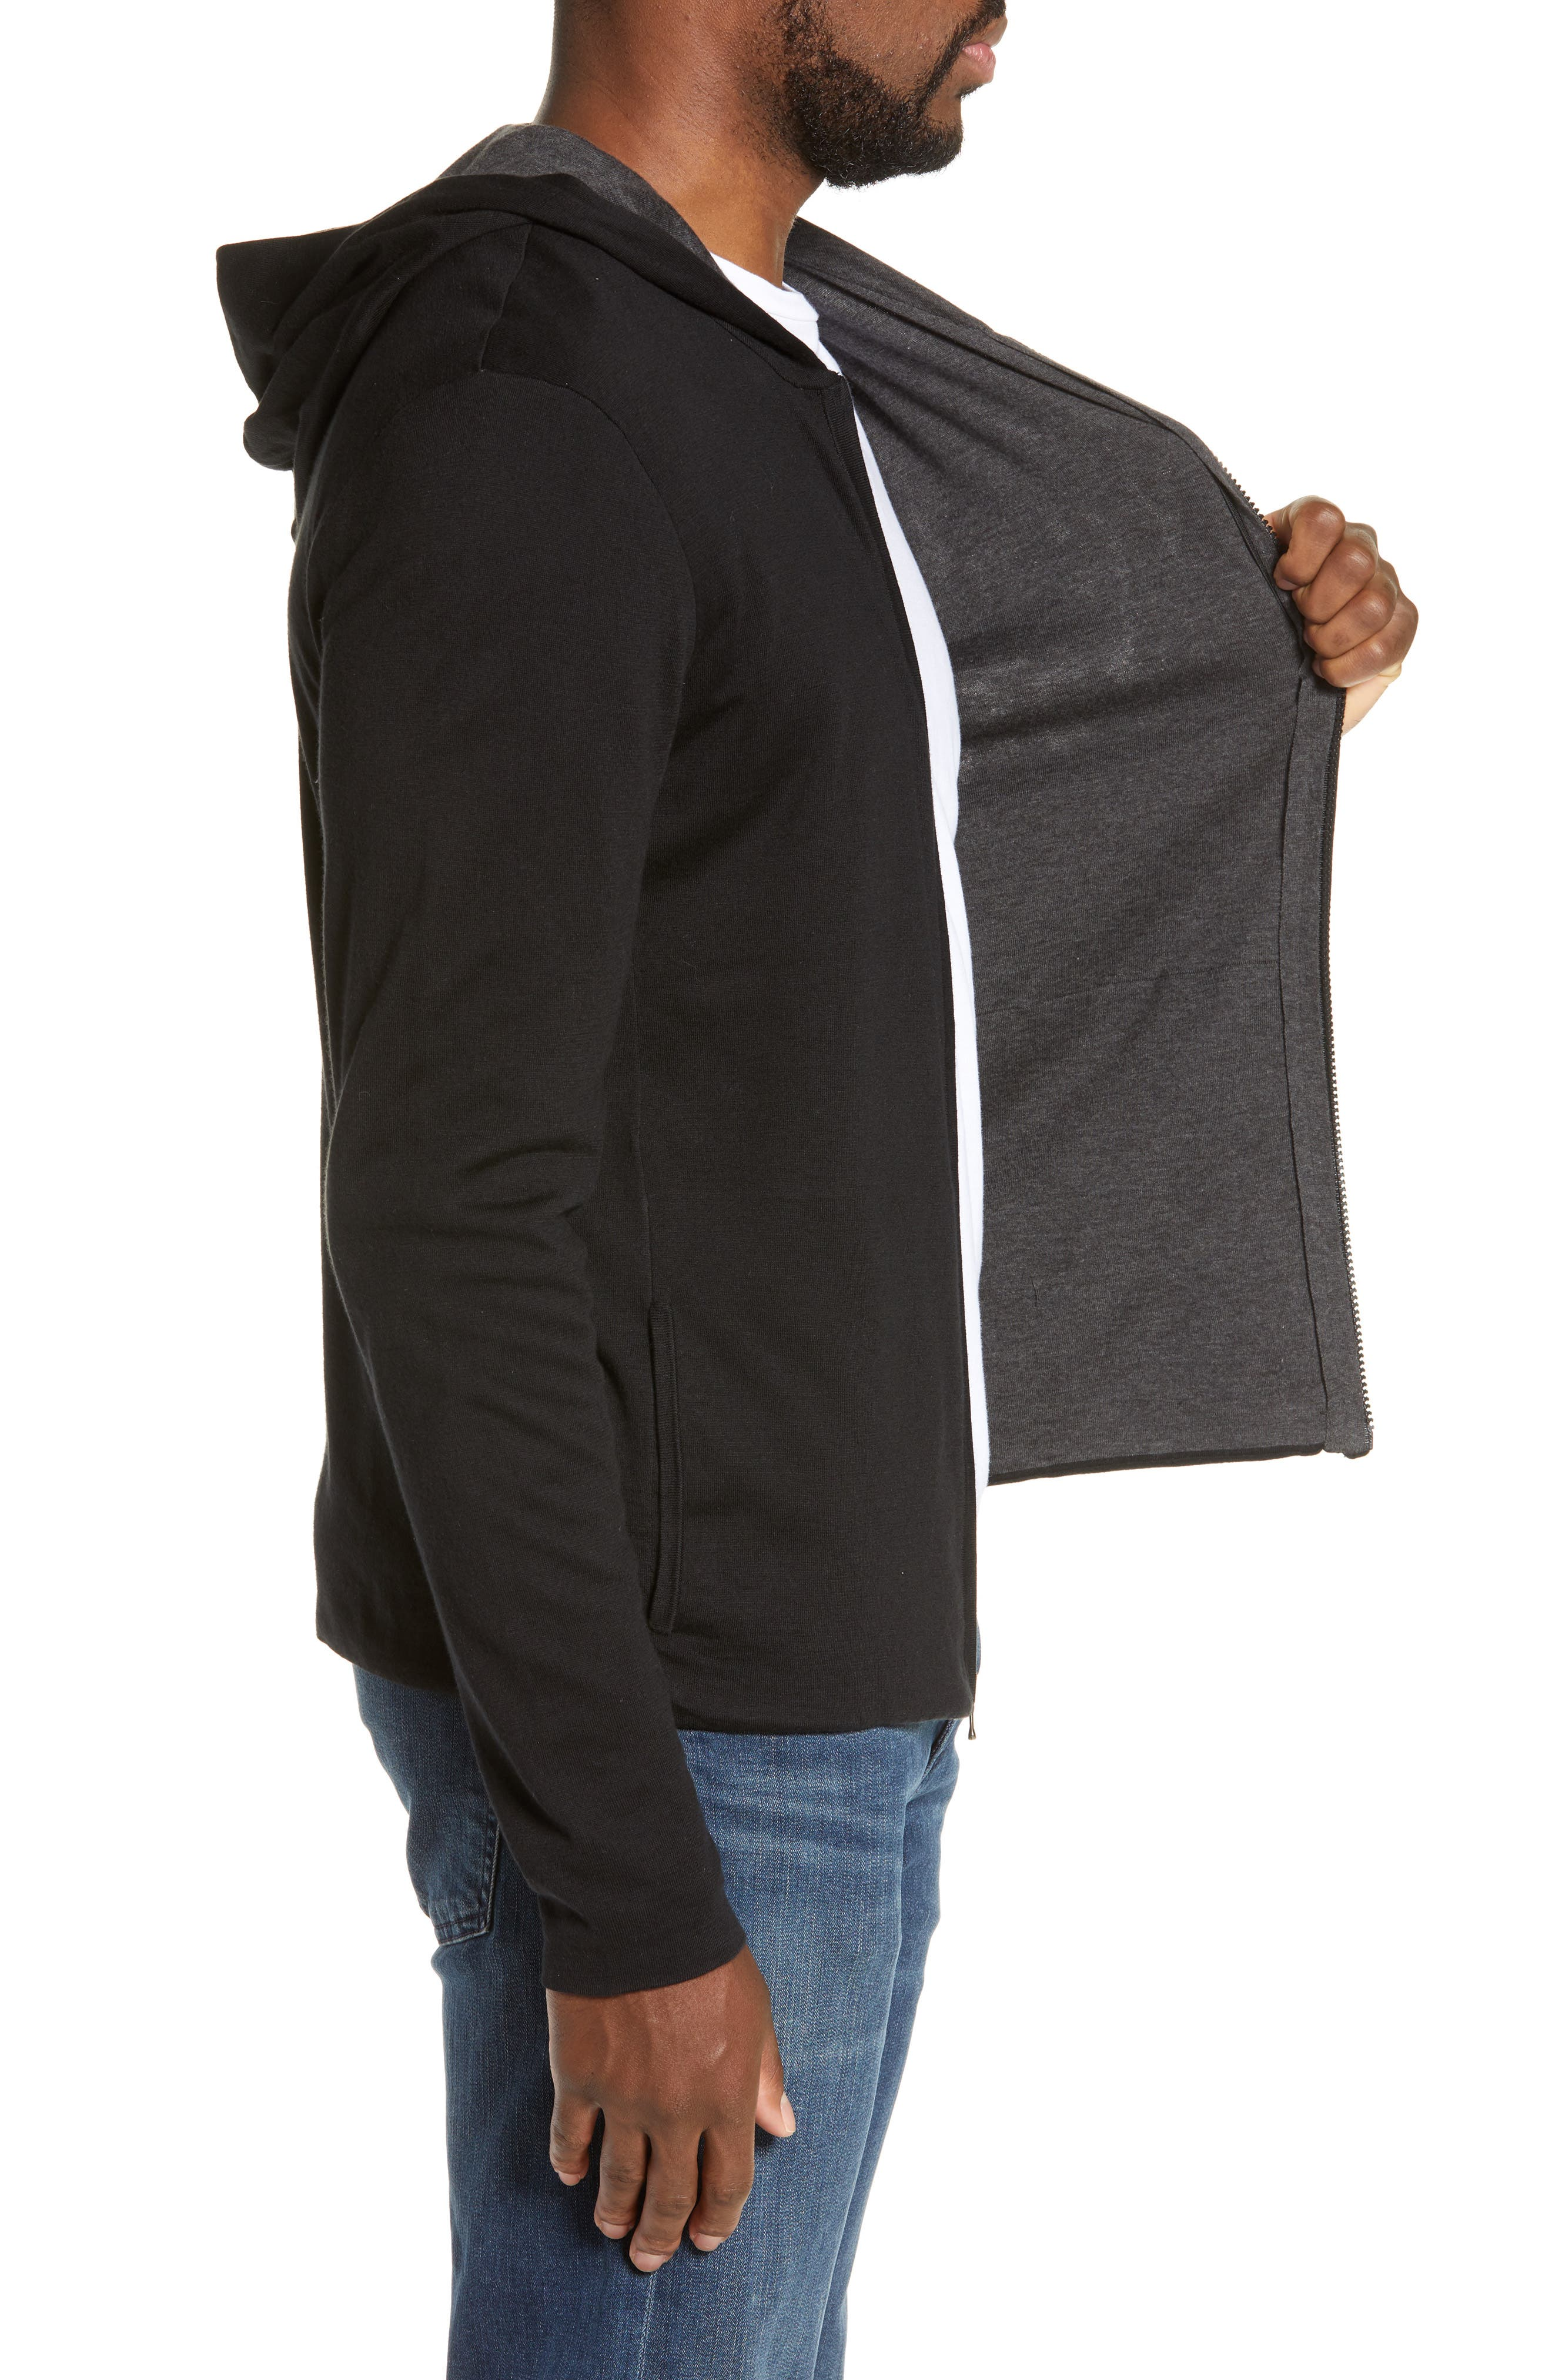 JAMES PERSE, Double Layer Full Zip Hoodie, Alternate thumbnail 3, color, 003